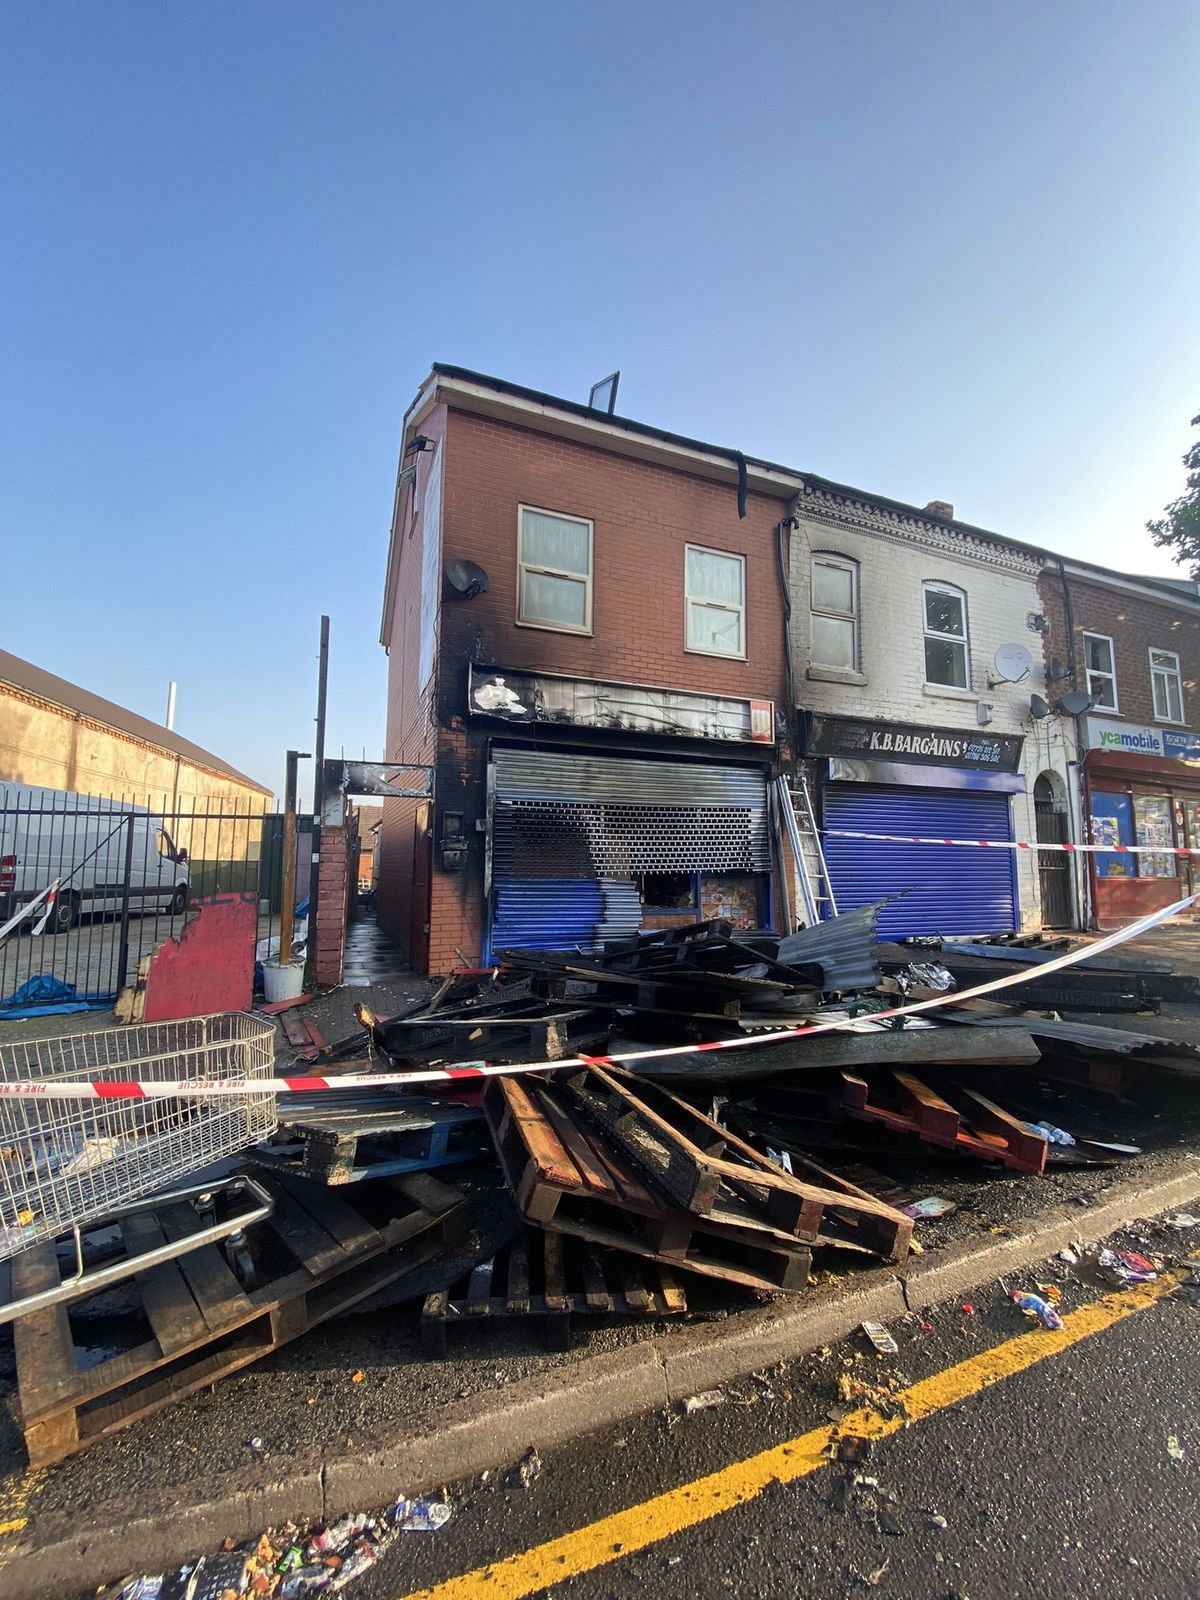 The frontage was completed destroyed by the fire, which threatened to spread to the inside of the property and the adjoining shops (Image by Ward End Fire Station)